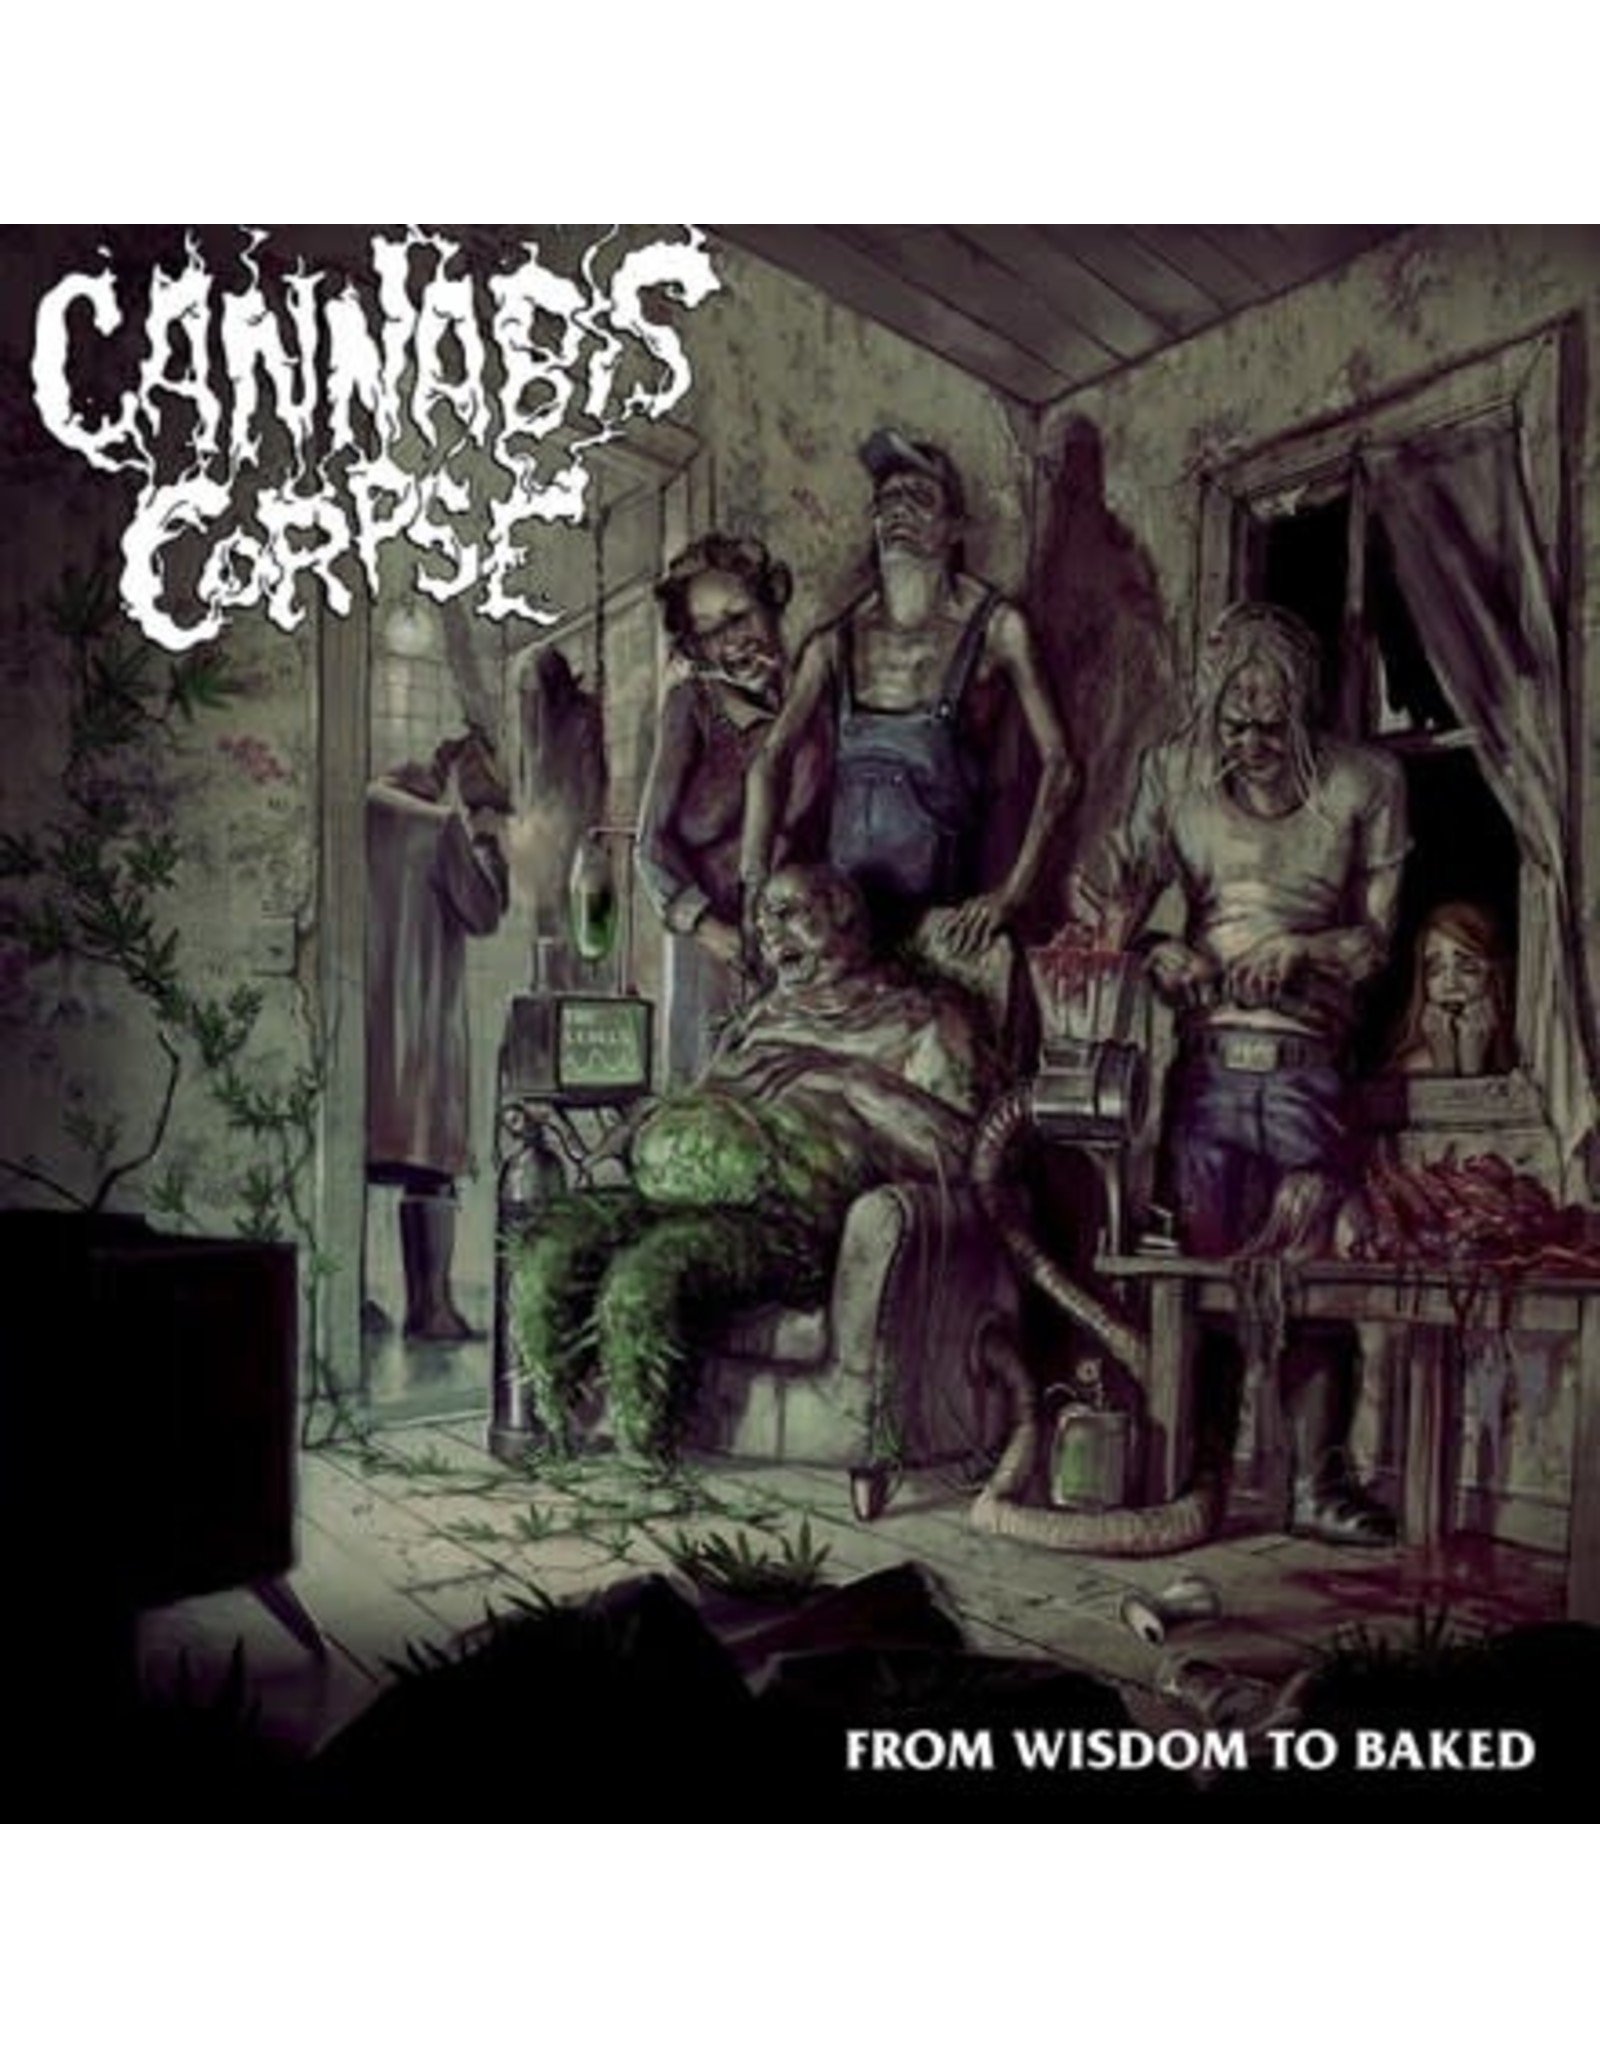 Season of Mist Cannabis Corpse: From Wisdom to Baked LP